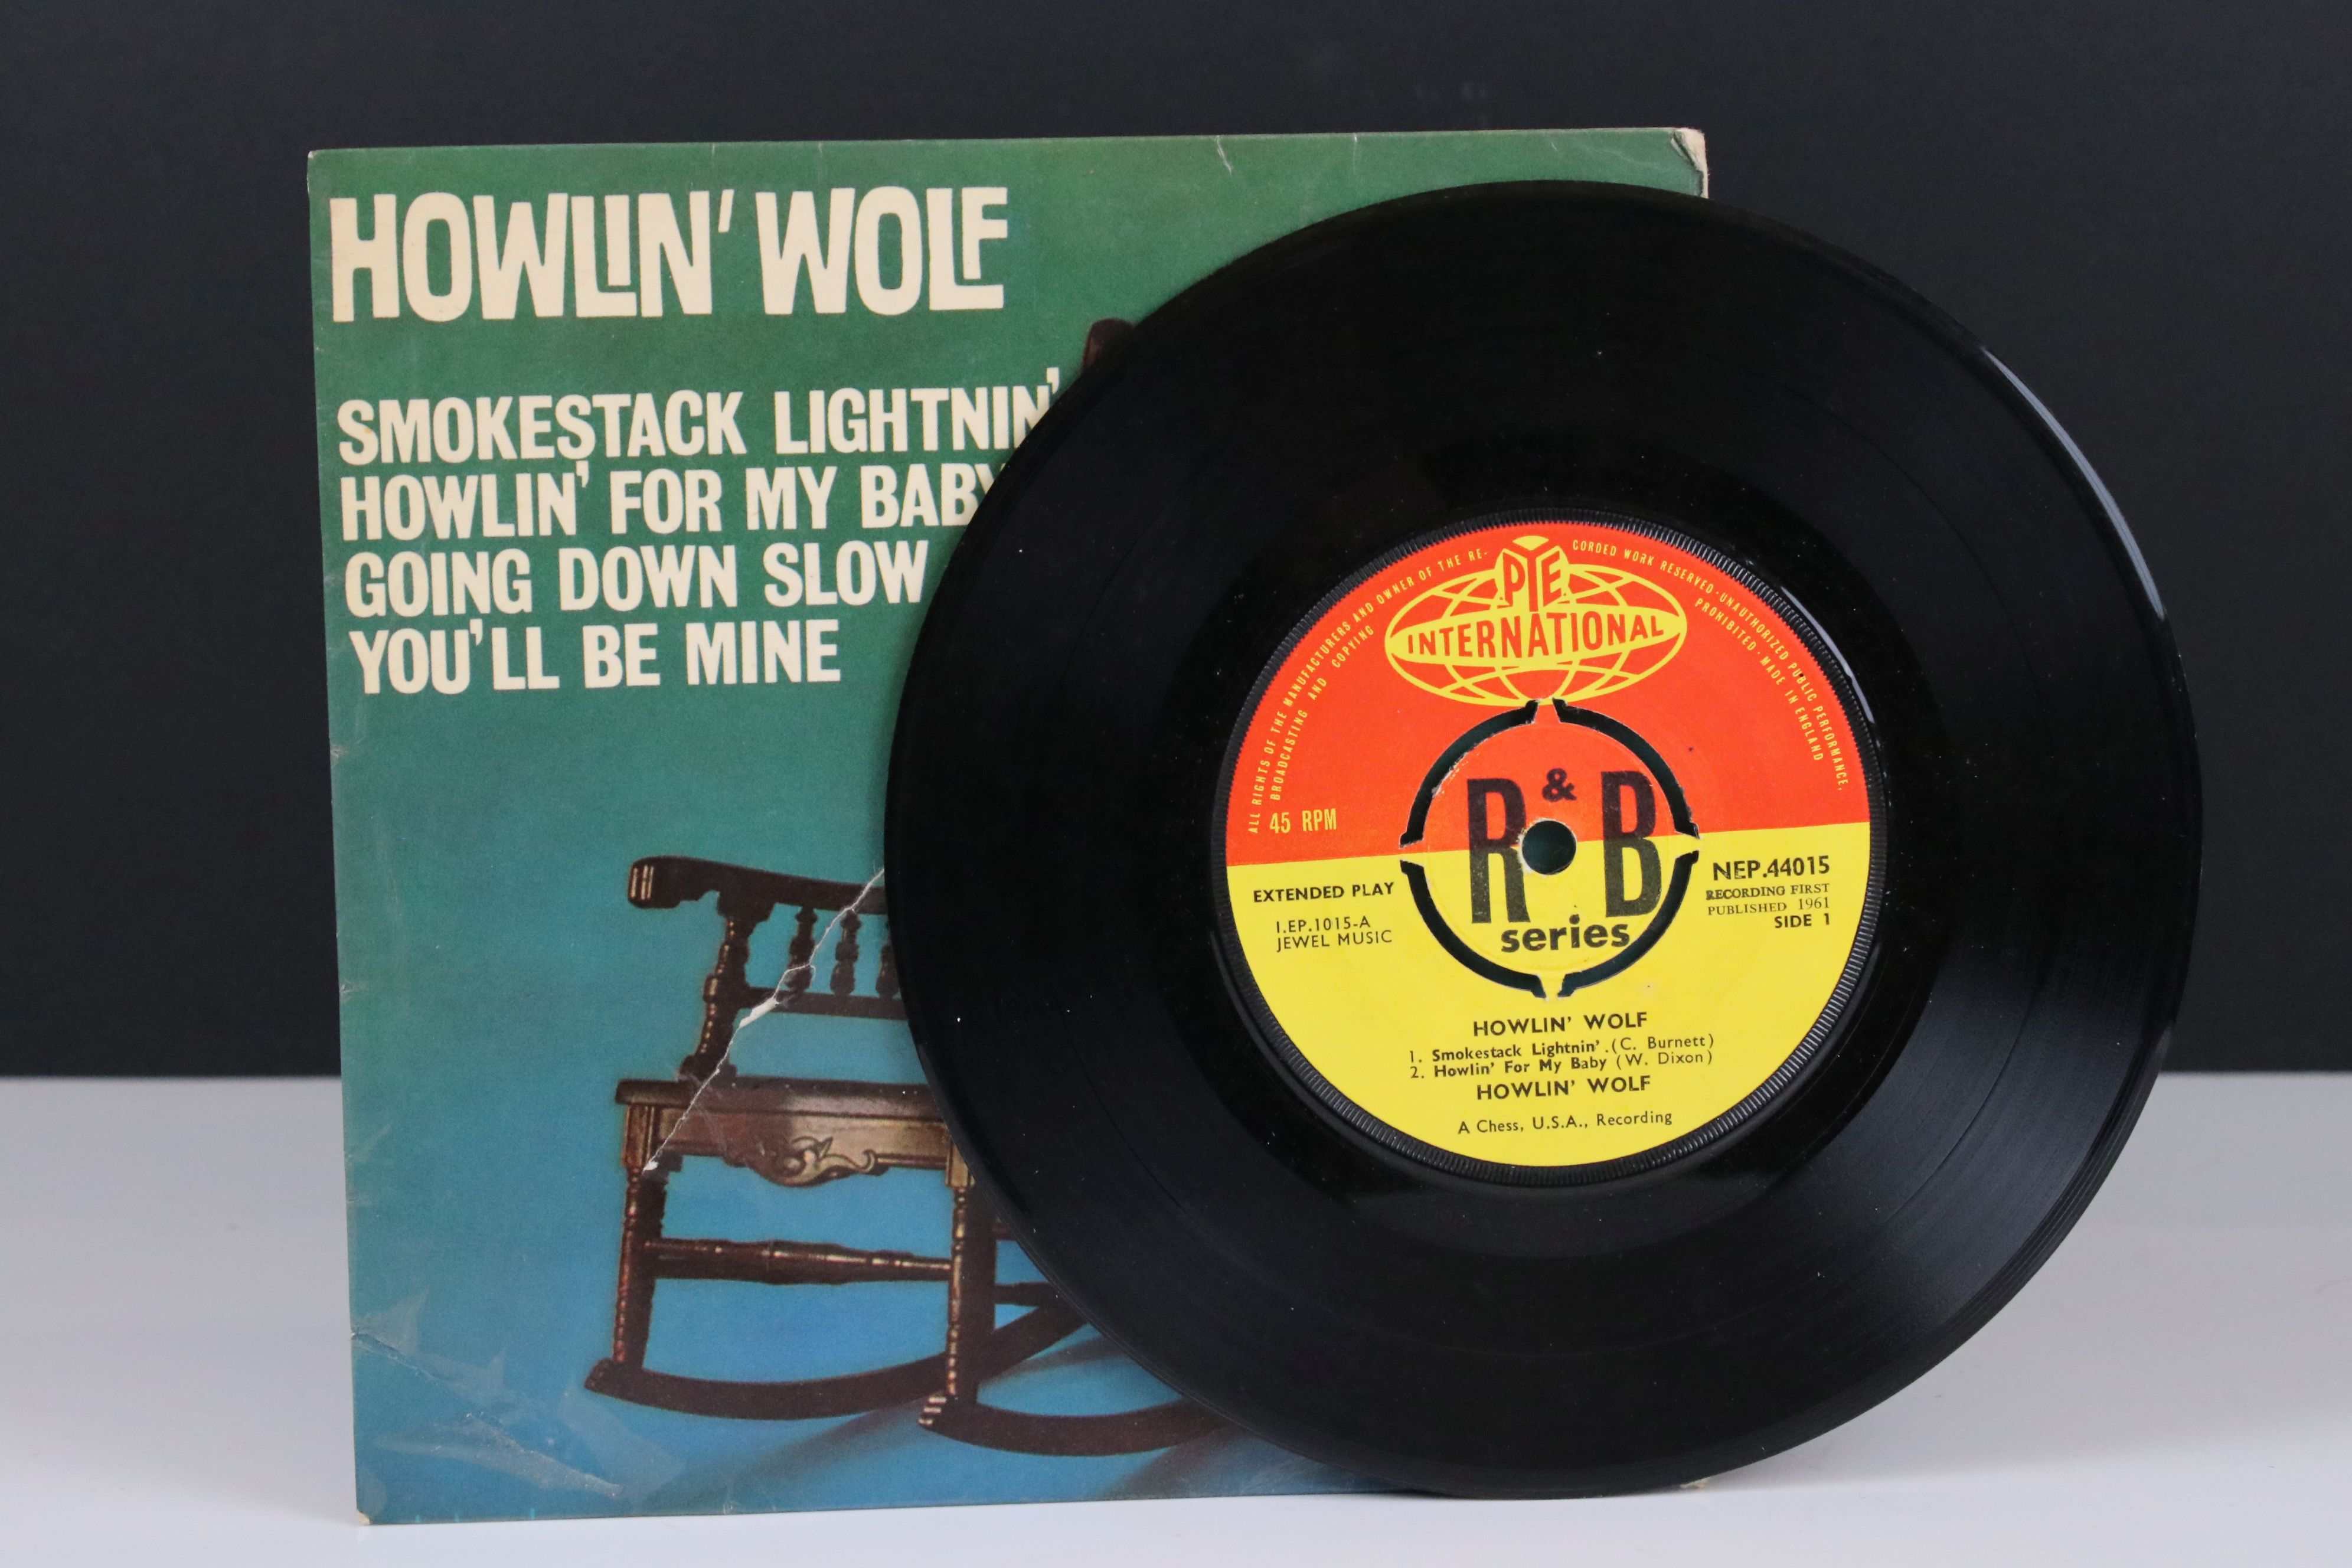 Vinyl - Howlin' Wolf Self Titled EP (NEP 44015) on Pye International. Sleeve G with 15cm tear to